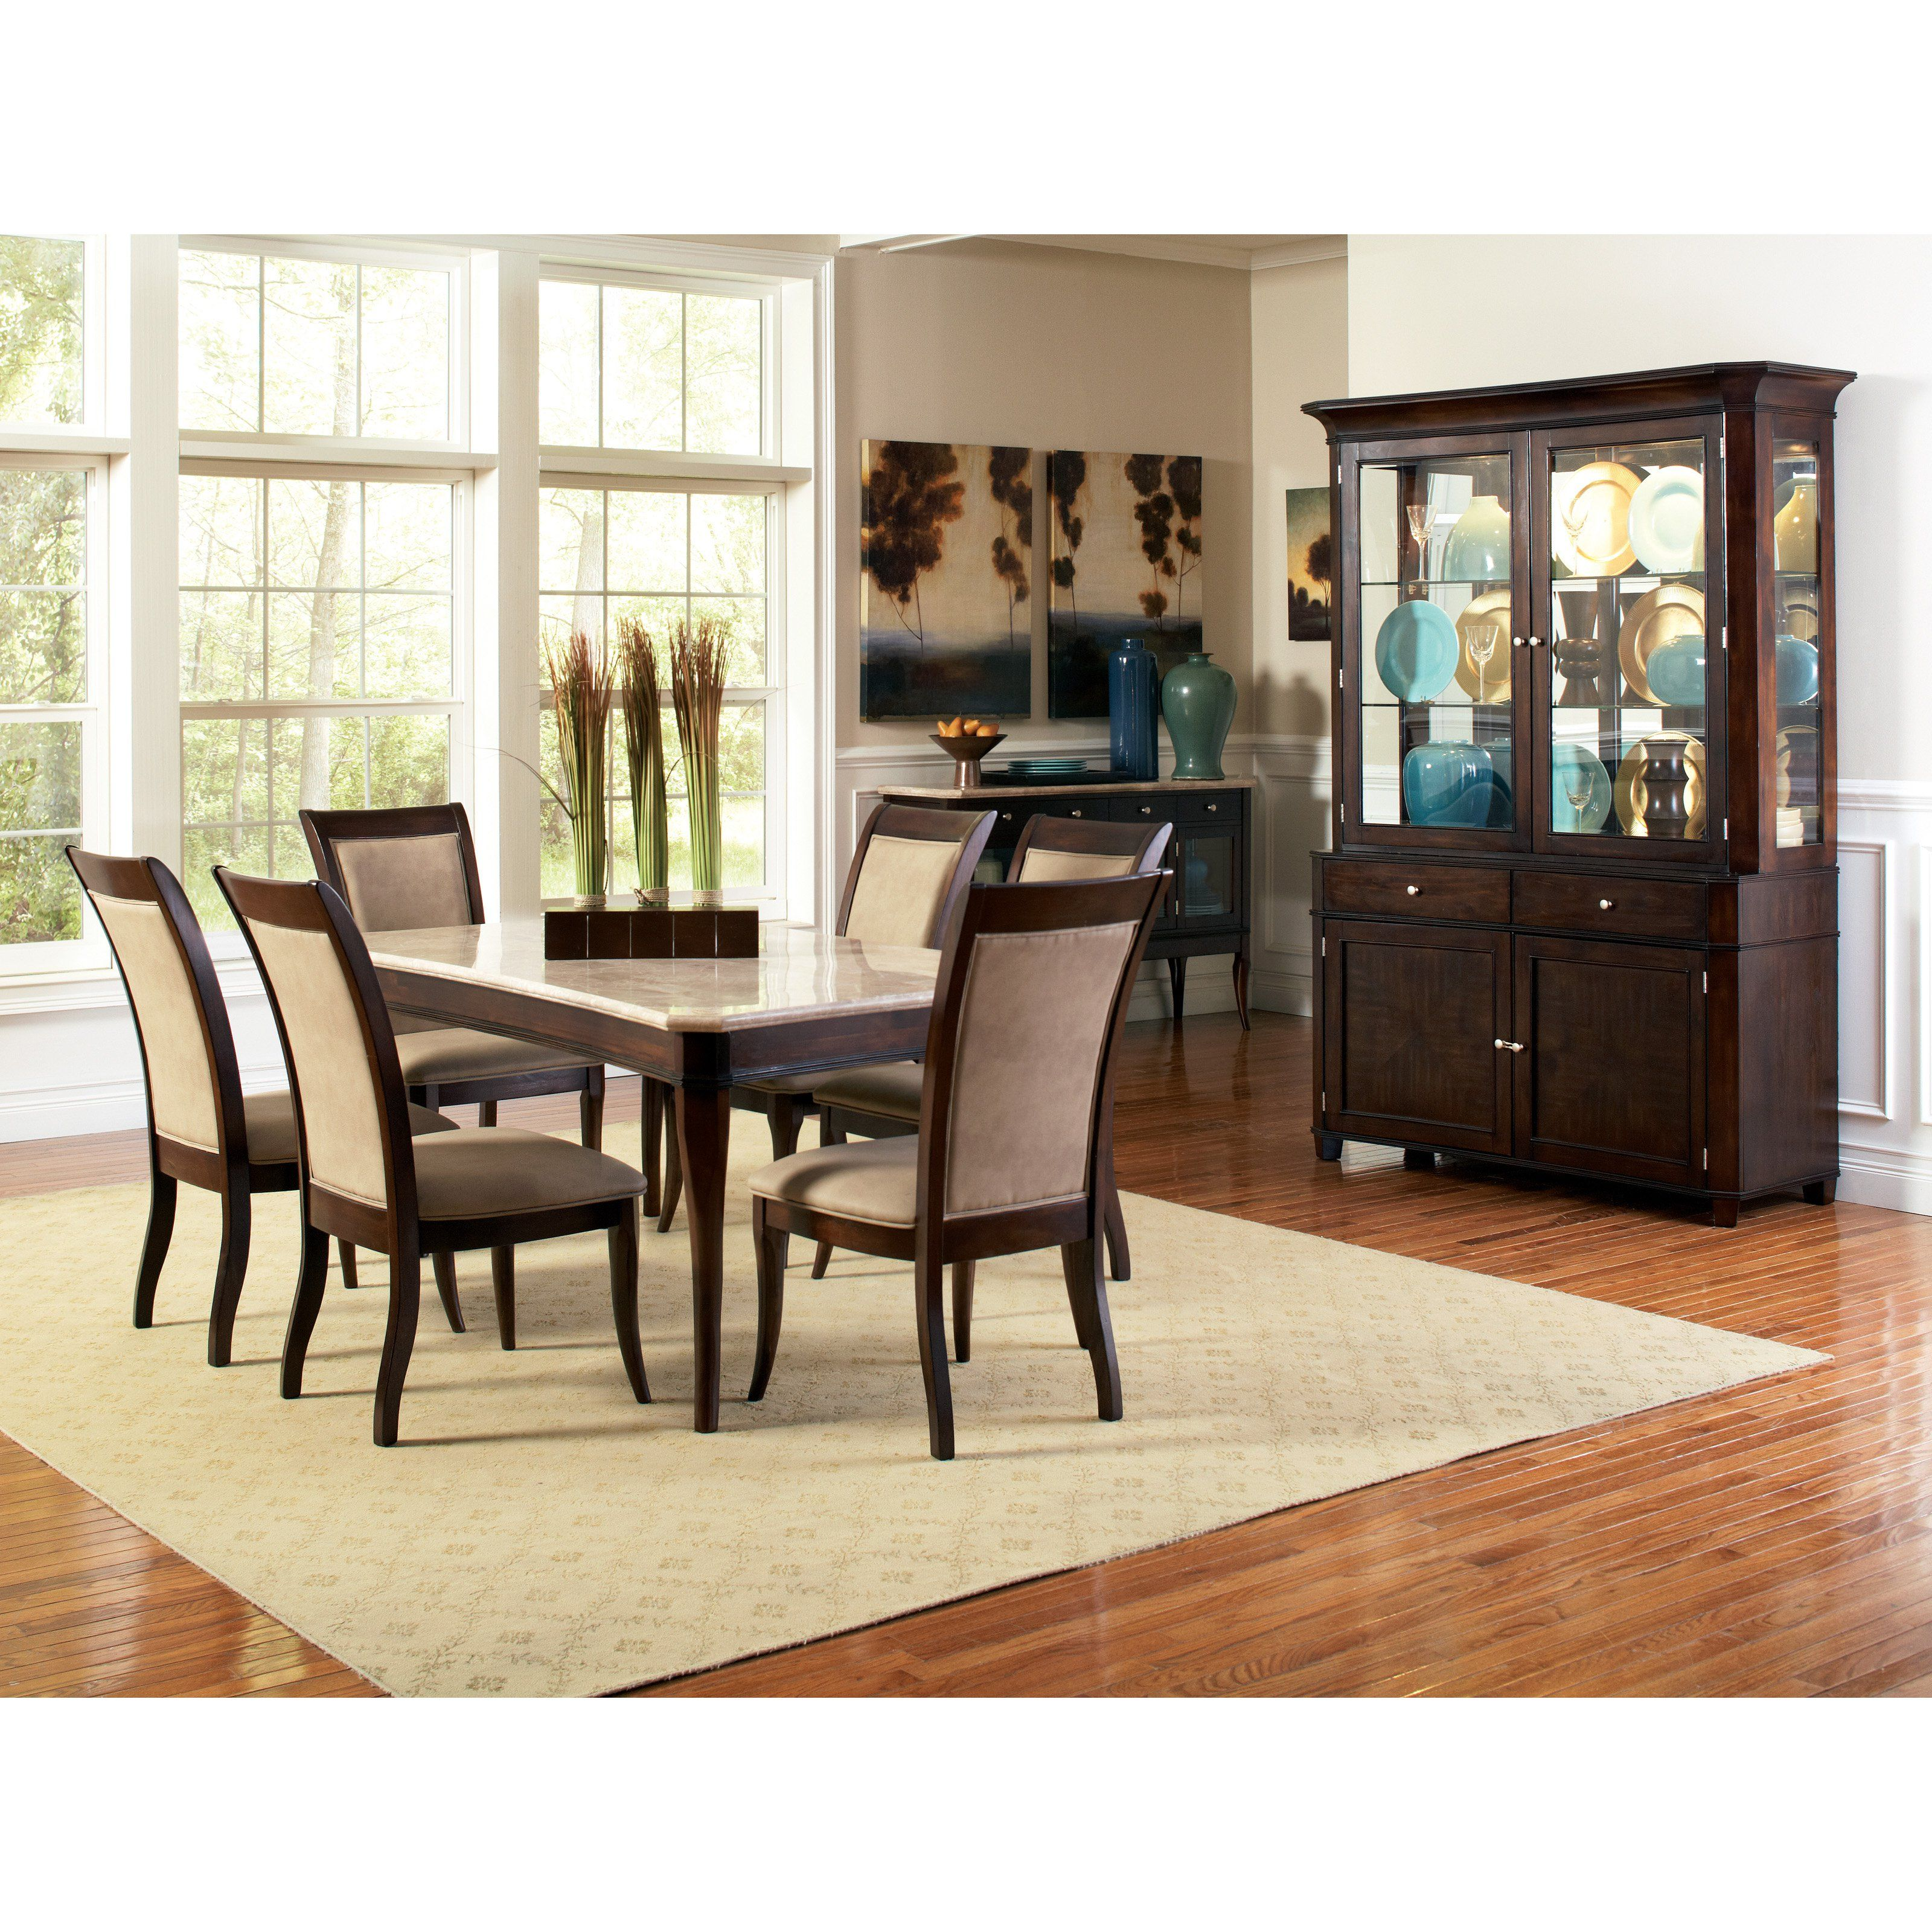 Steve Silver 7 Piece Marseille Marble Top Dining Table Set   Dark Cherry    $1452 @hayneedle